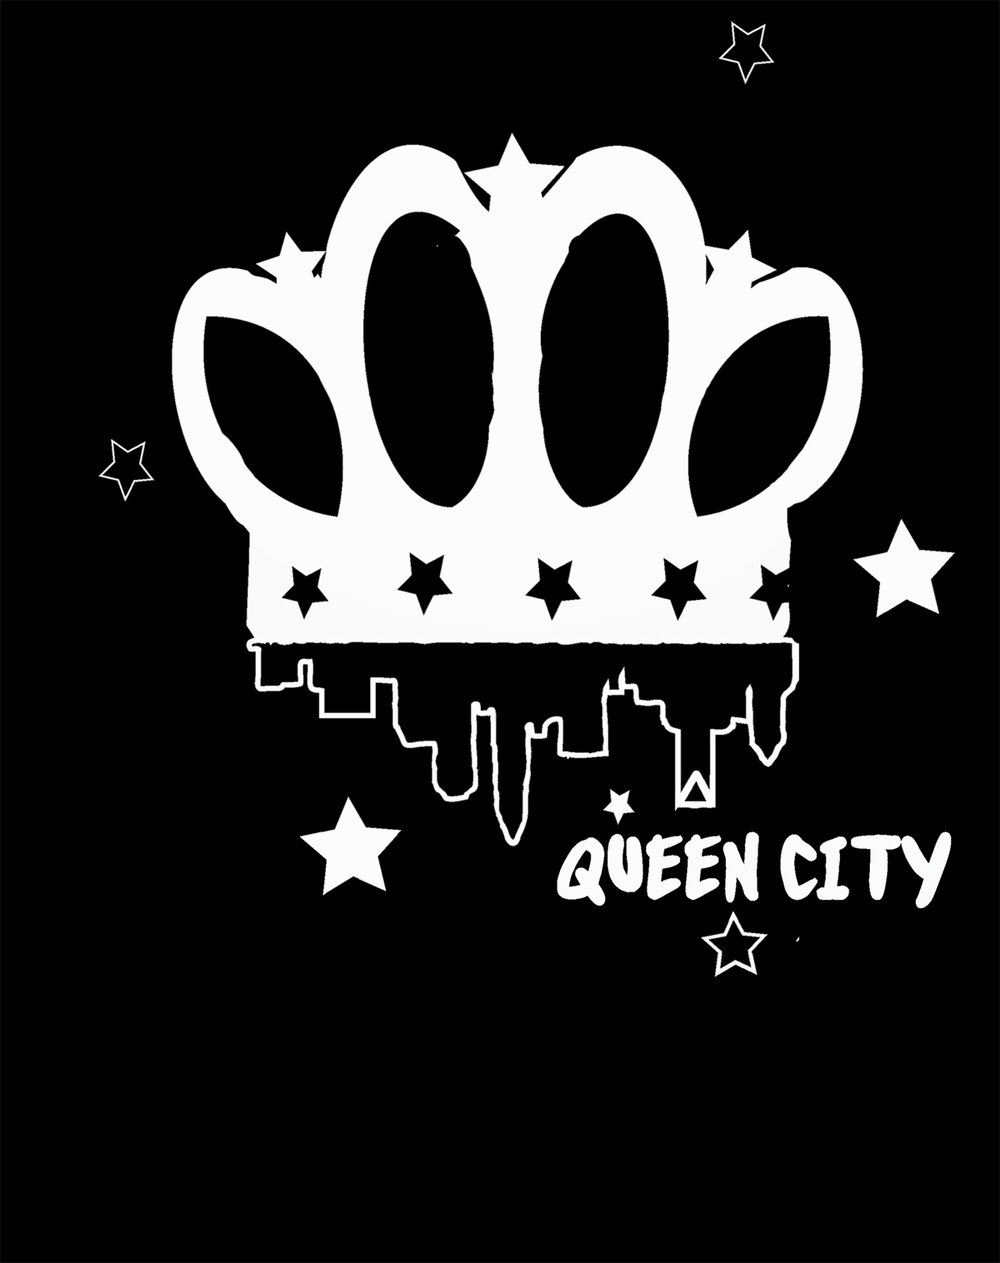 qyeen city logo t shirt crown town upside down.jpg